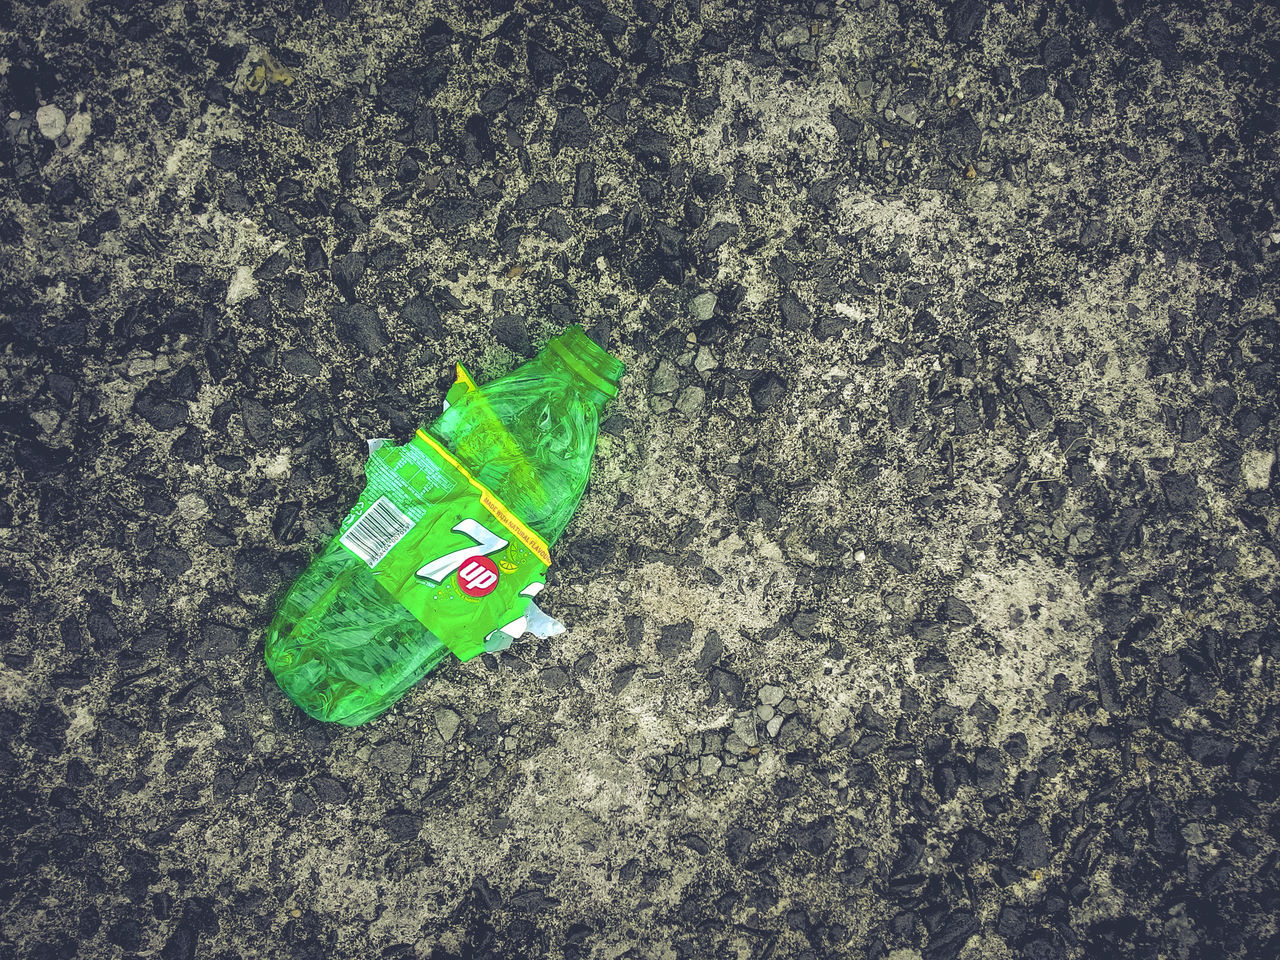 Top view of crushed 7up plastic bottle on concrete floor 7up Concrete Floor Copy Space Crushed Day Environmental Issues Green Color Horizontal No People Outdoors Plastic Bottle Recyclable Recycle Top View Waste